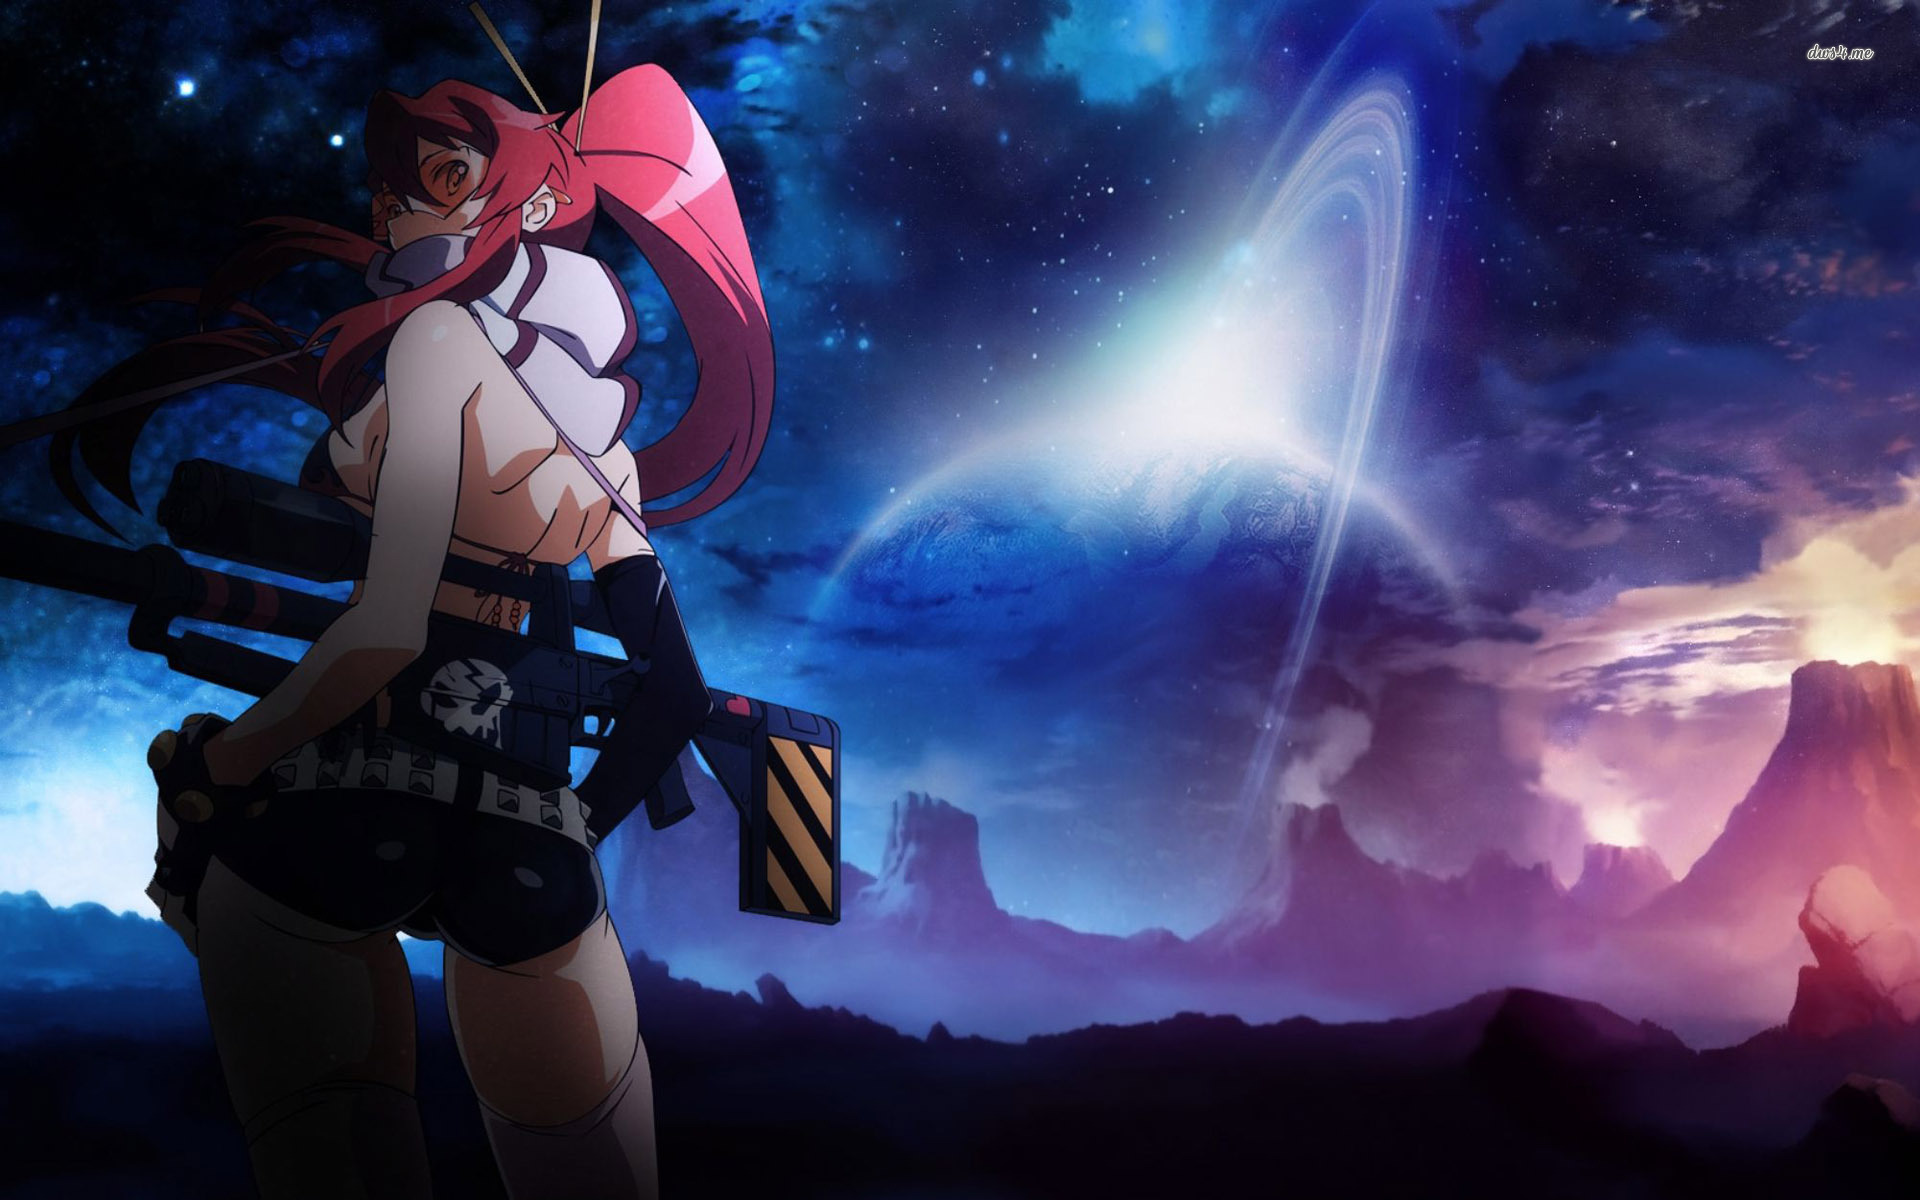 Gurren lagann wallpaper yoko wallpapersafari - Gurren lagann wallpaper ...